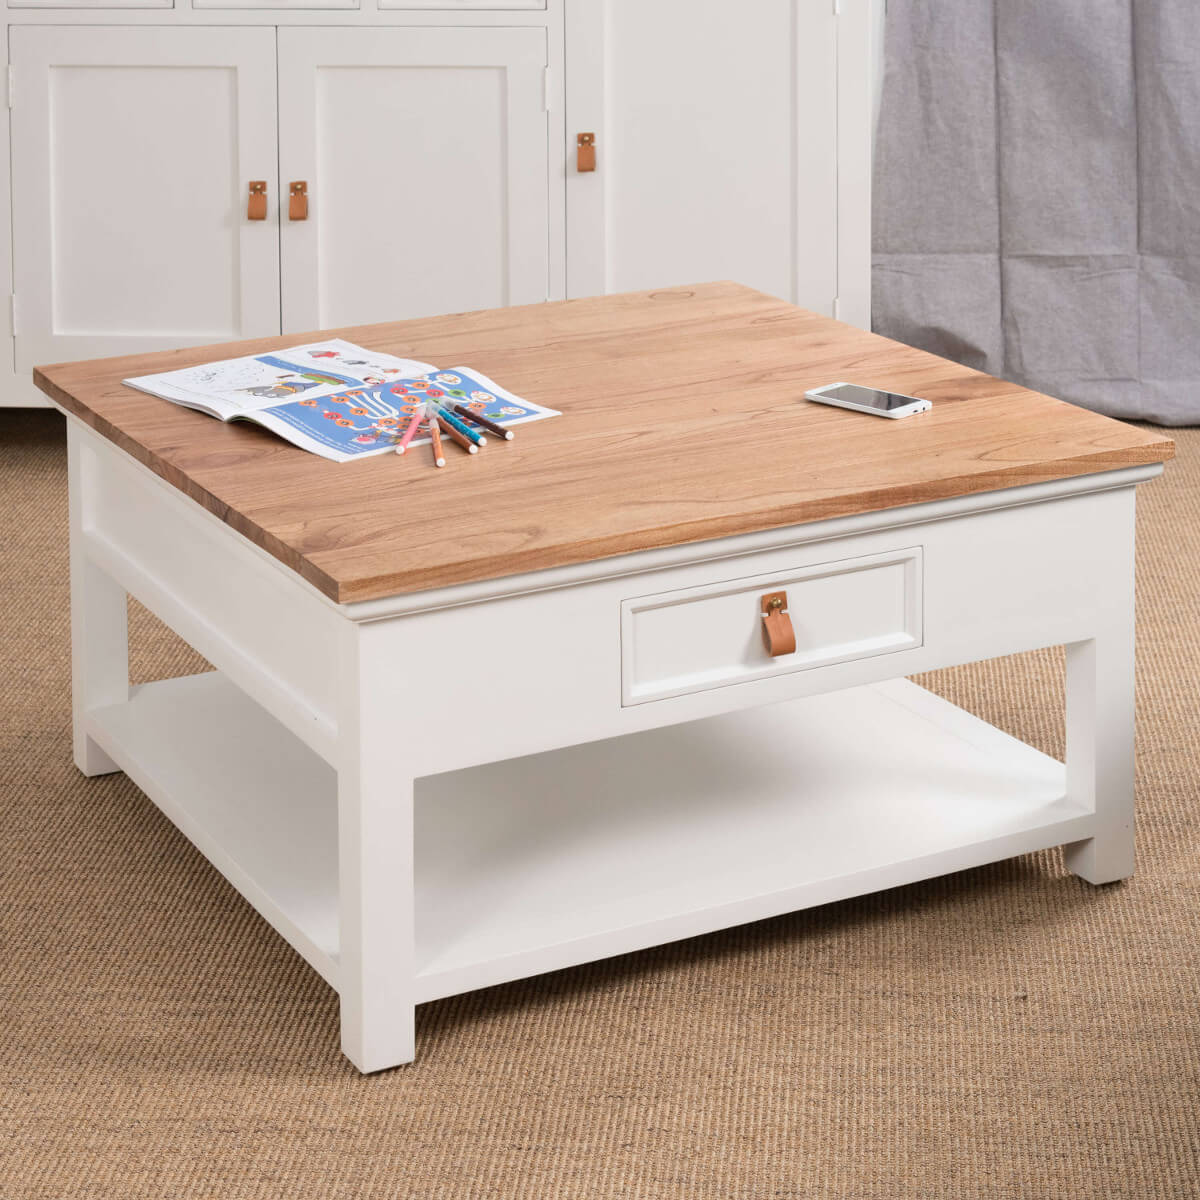 table basse blanche table basse acajou carr e bois. Black Bedroom Furniture Sets. Home Design Ideas